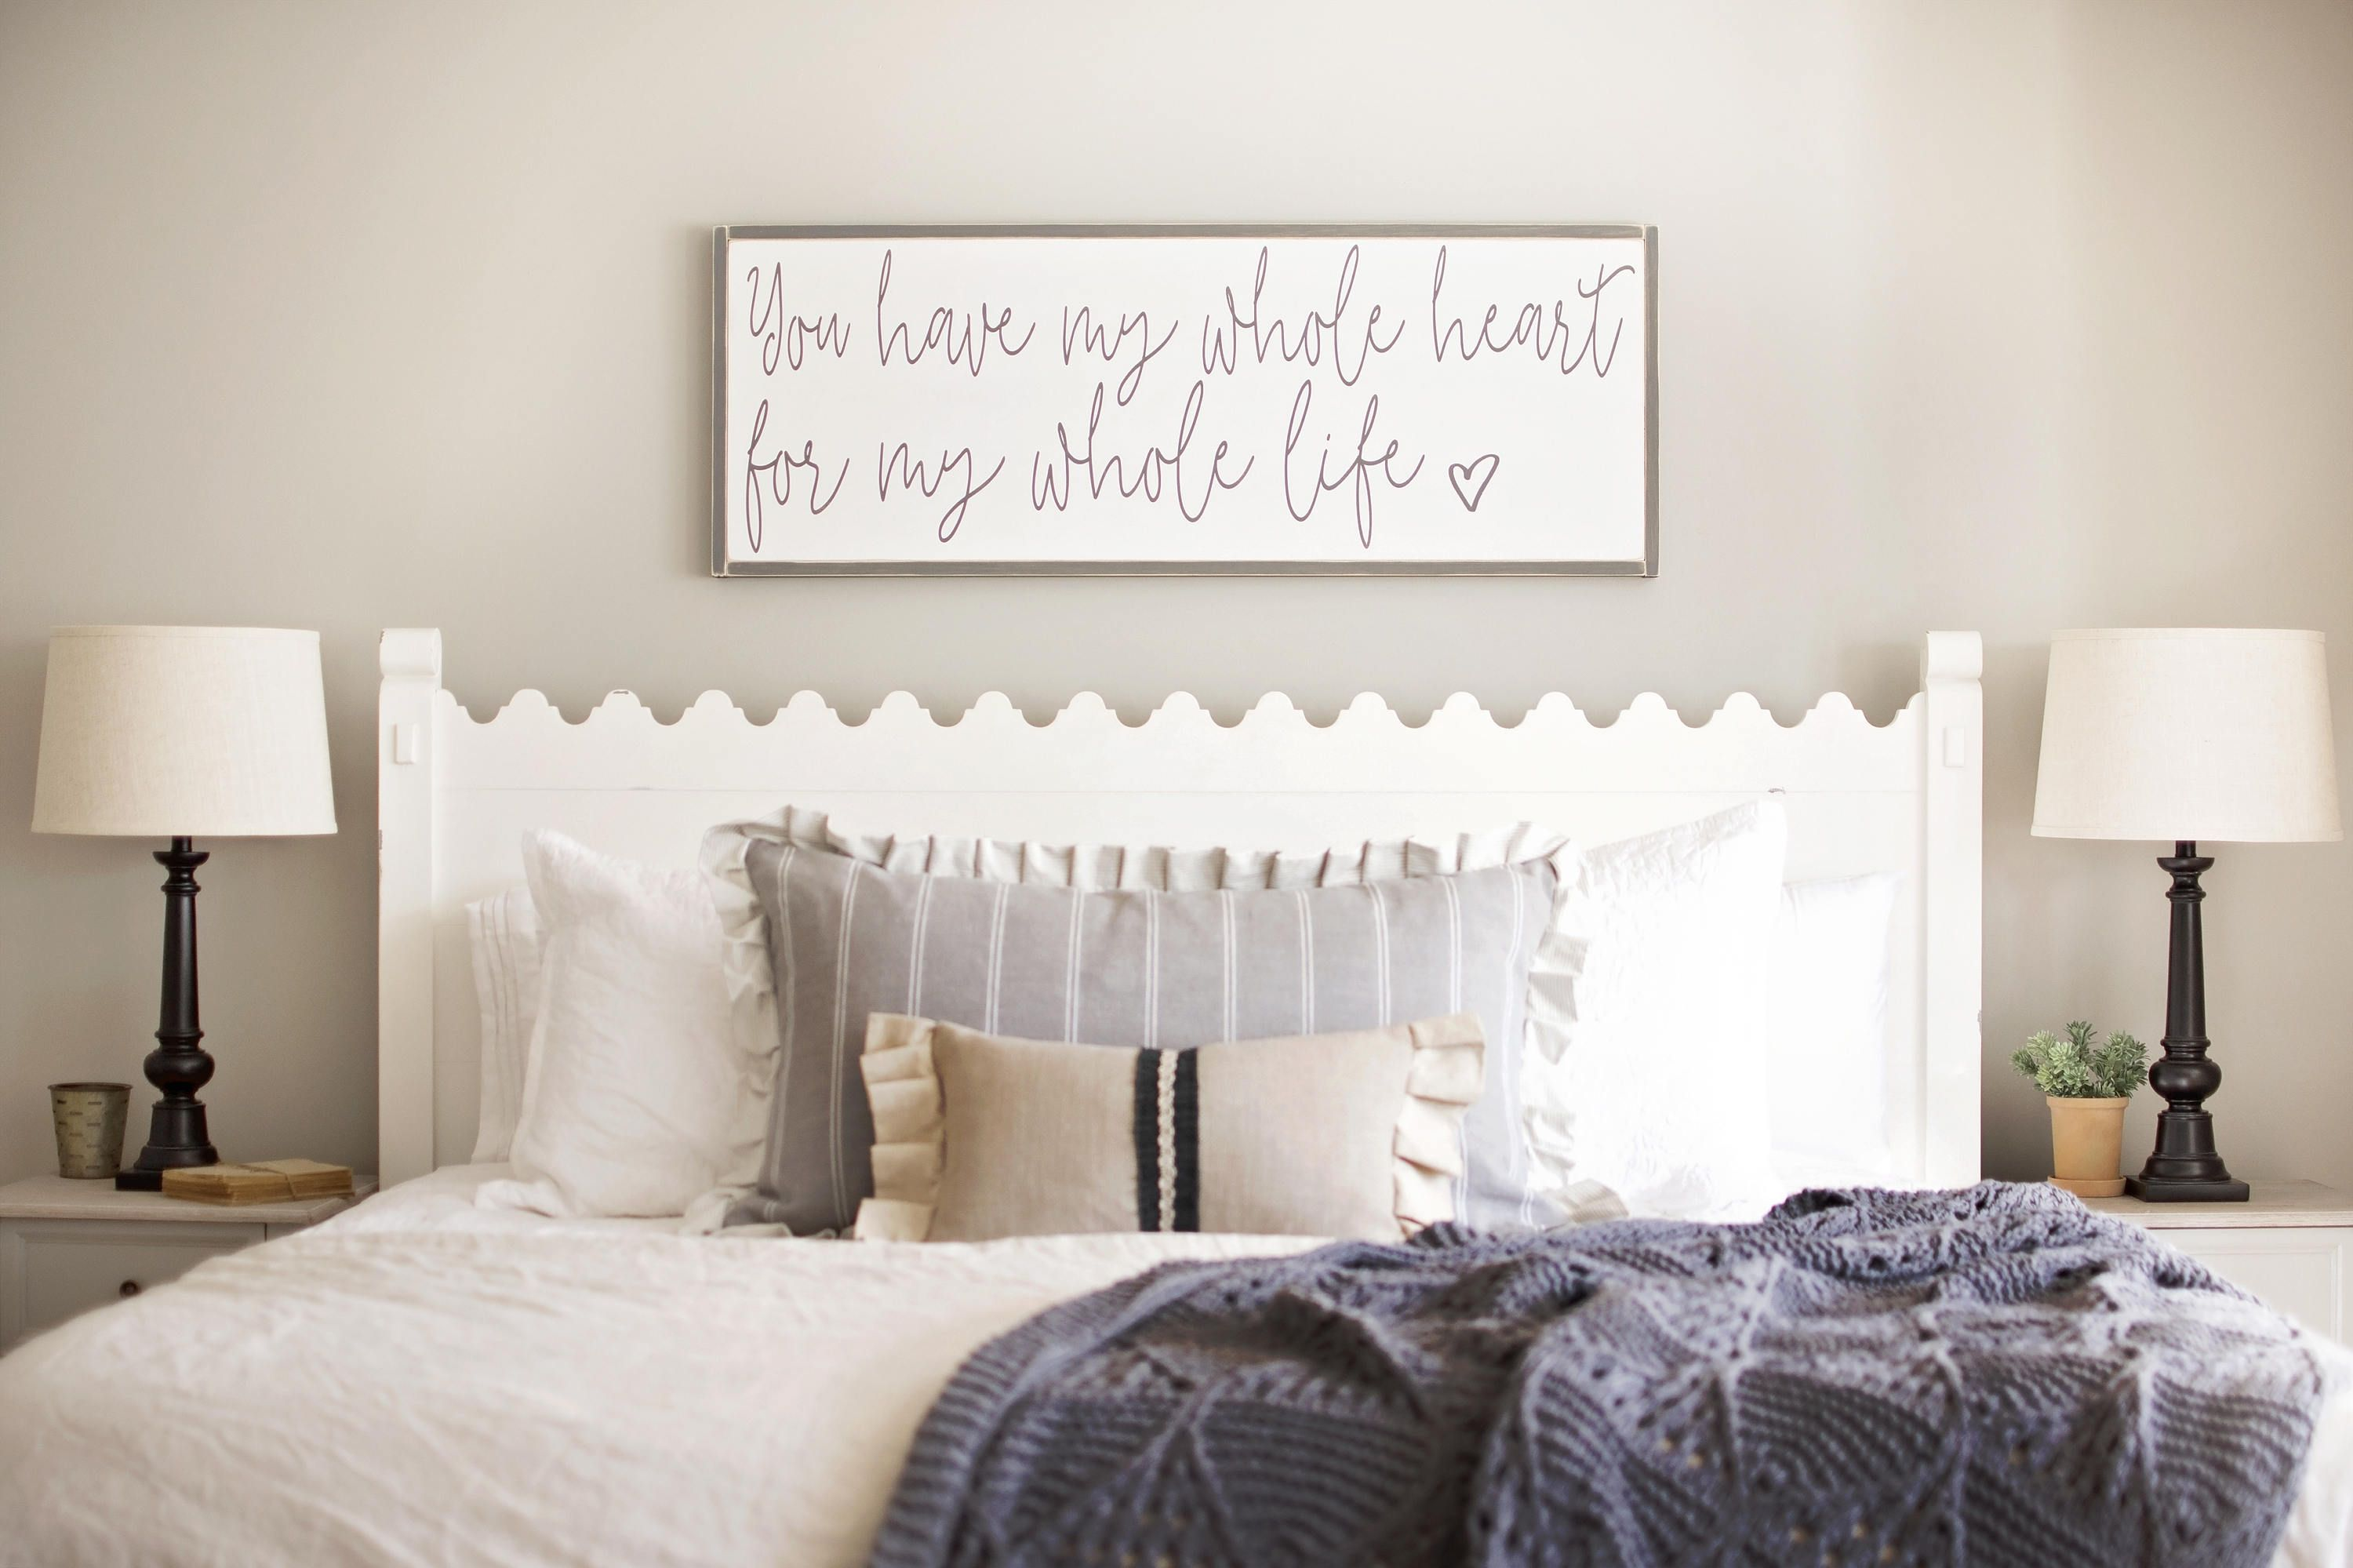 Above Bed Decor You Have My Whole Heart For My Whole Life You